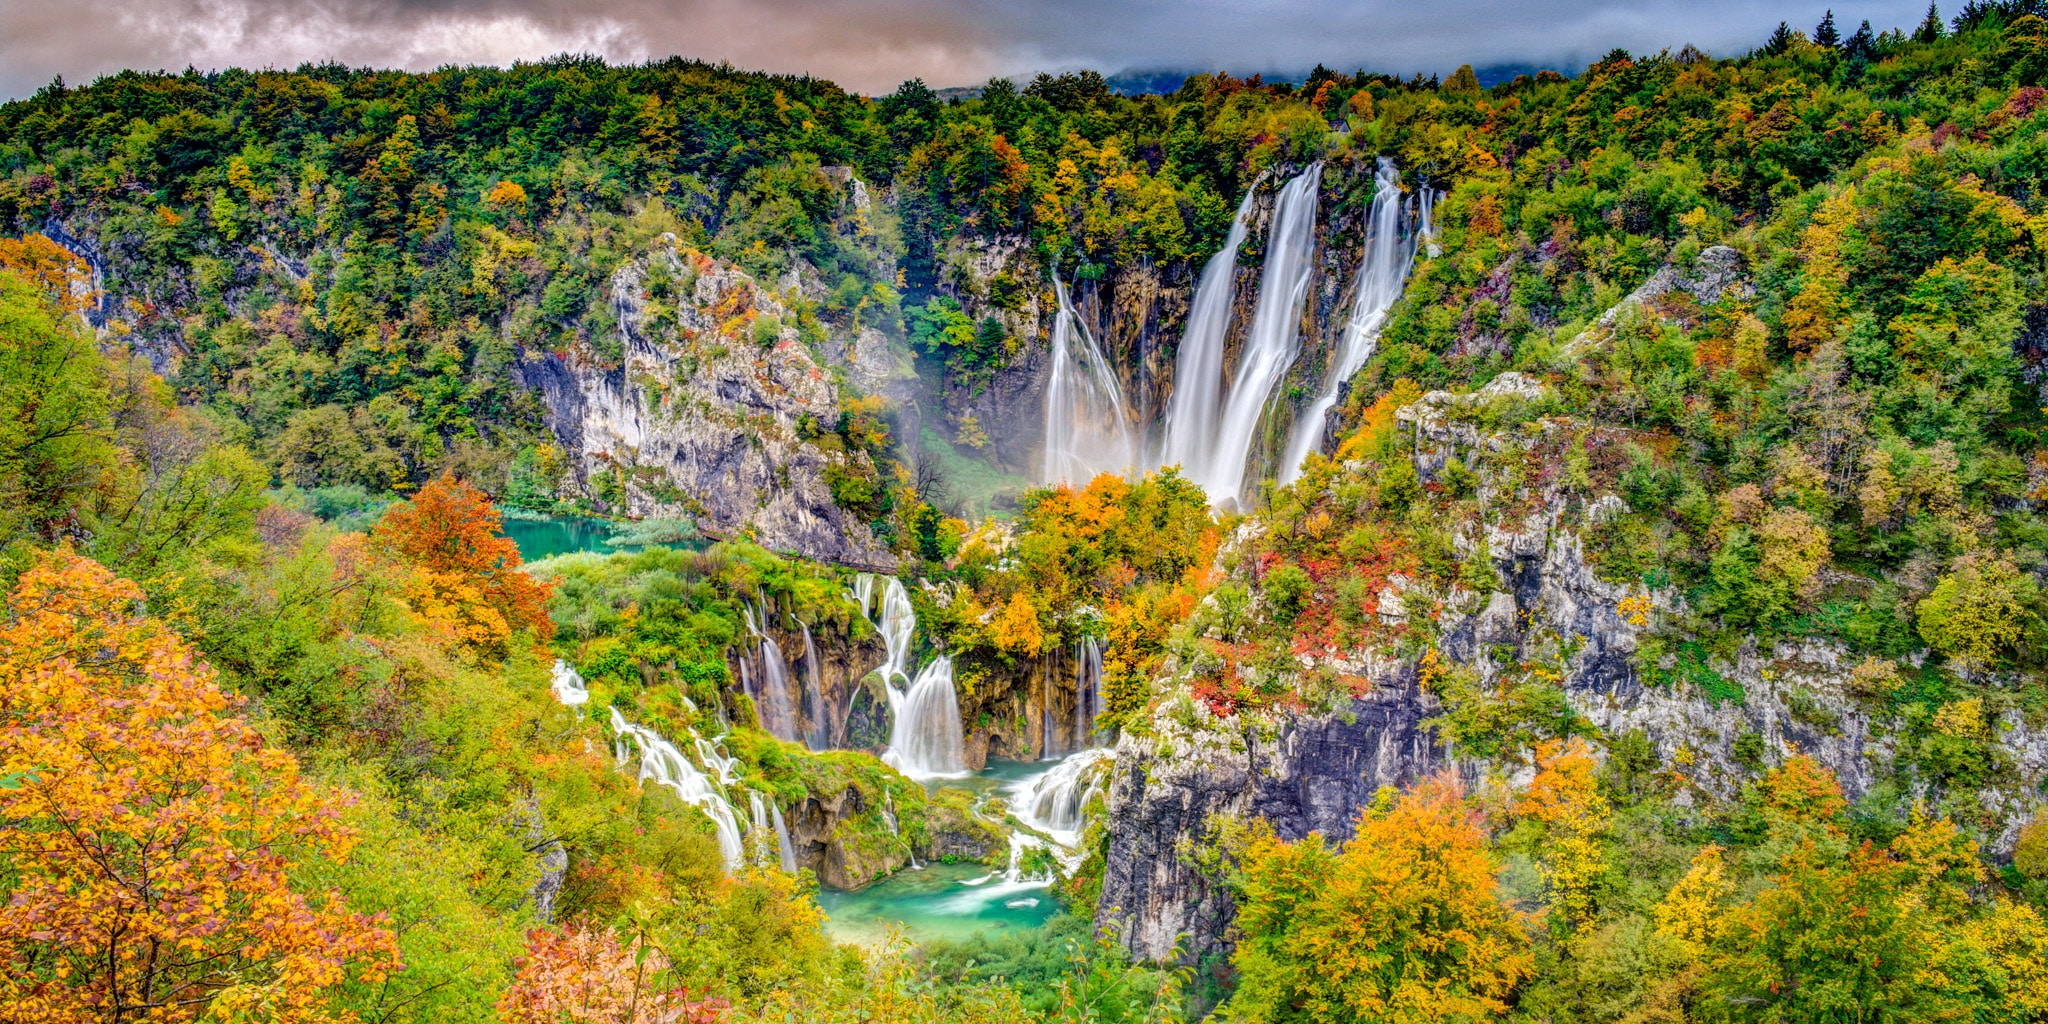 The Big Waterfall, also known as Veliki Slap, surrounded by autumn leaves as seen from just inside Entrance 1 of Plitvice Lakes National Park in Croatia